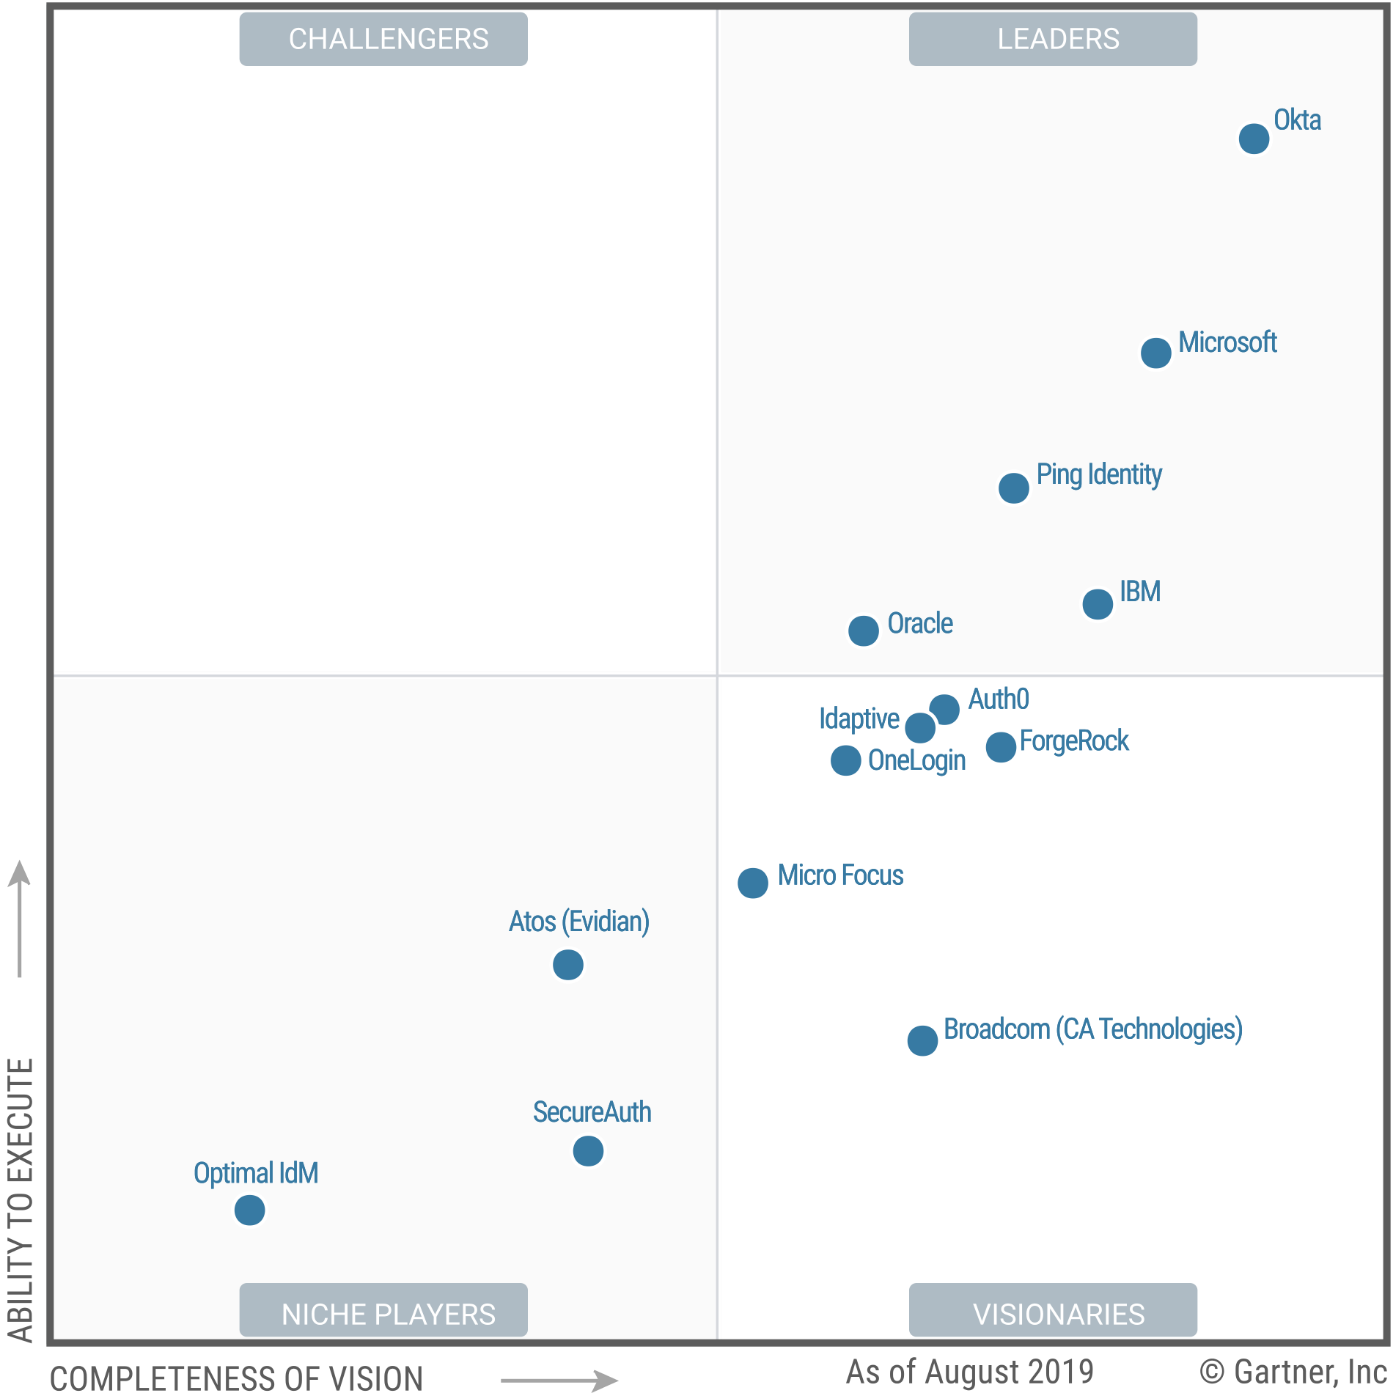 Magic Quadrant for Access Management 2019 (G00433910)